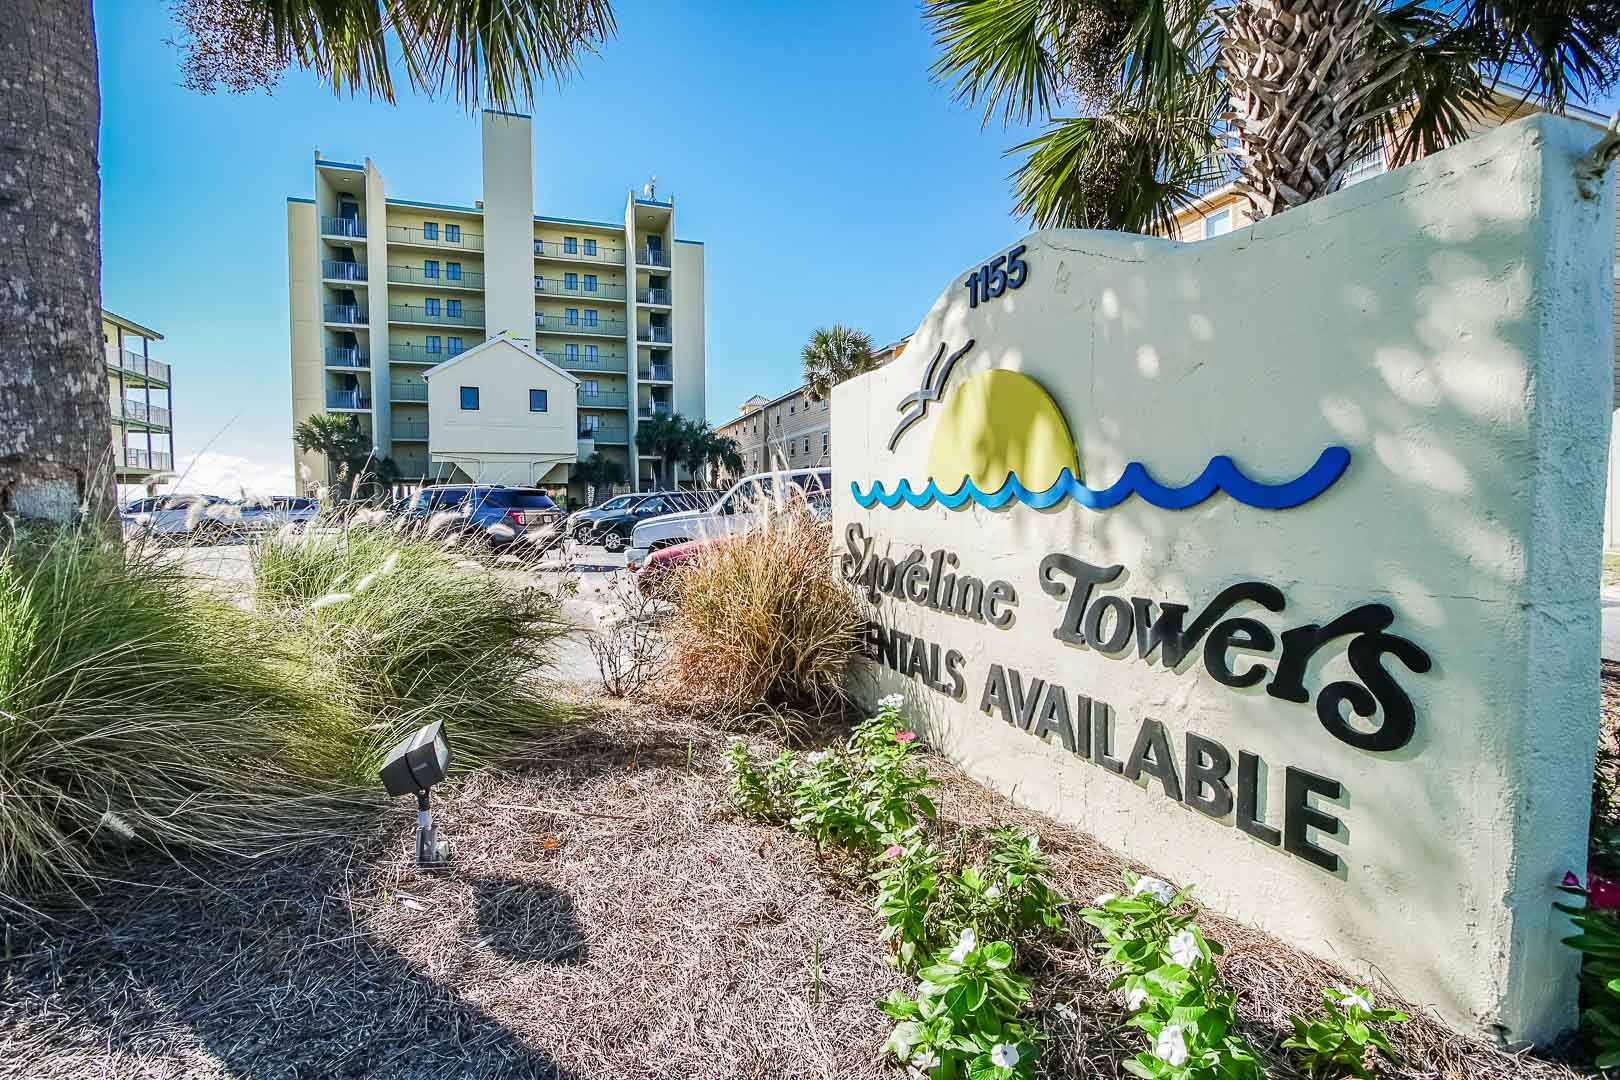 A beautiful resort entrance and signage at VRI's Shoreline Towers in Gulf Shores, Alabama.